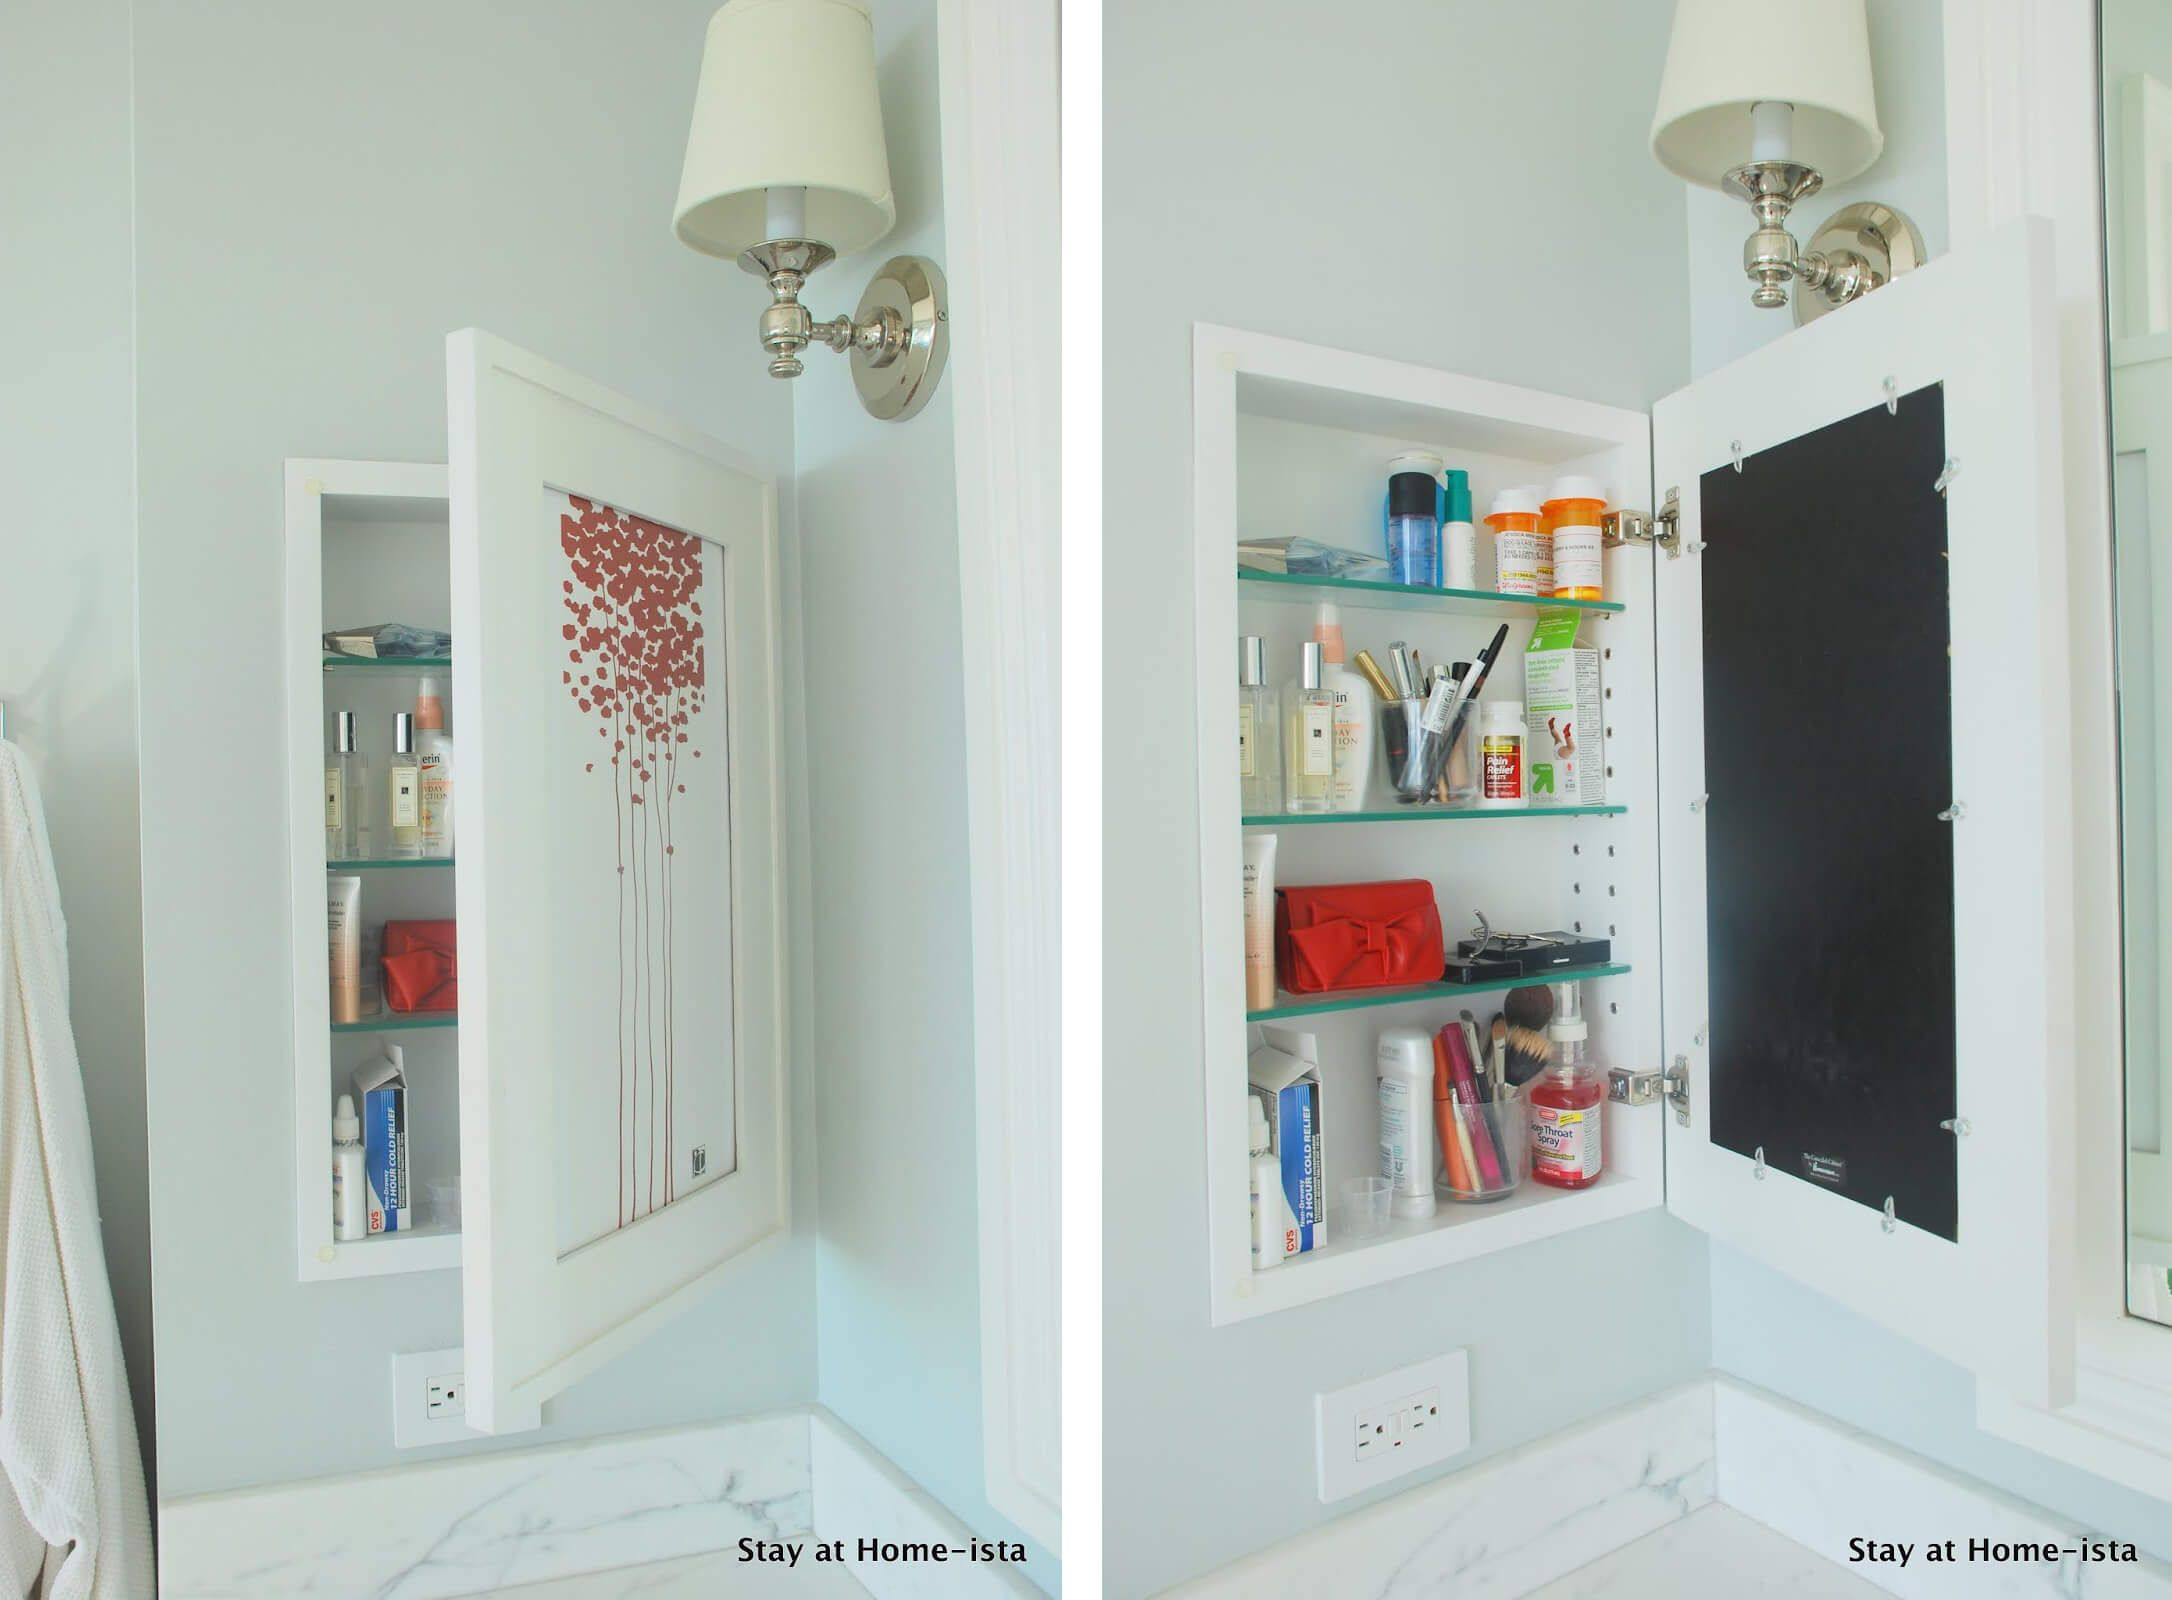 42 Super Creative Diy Bathroom Storage Projects To Organize Your